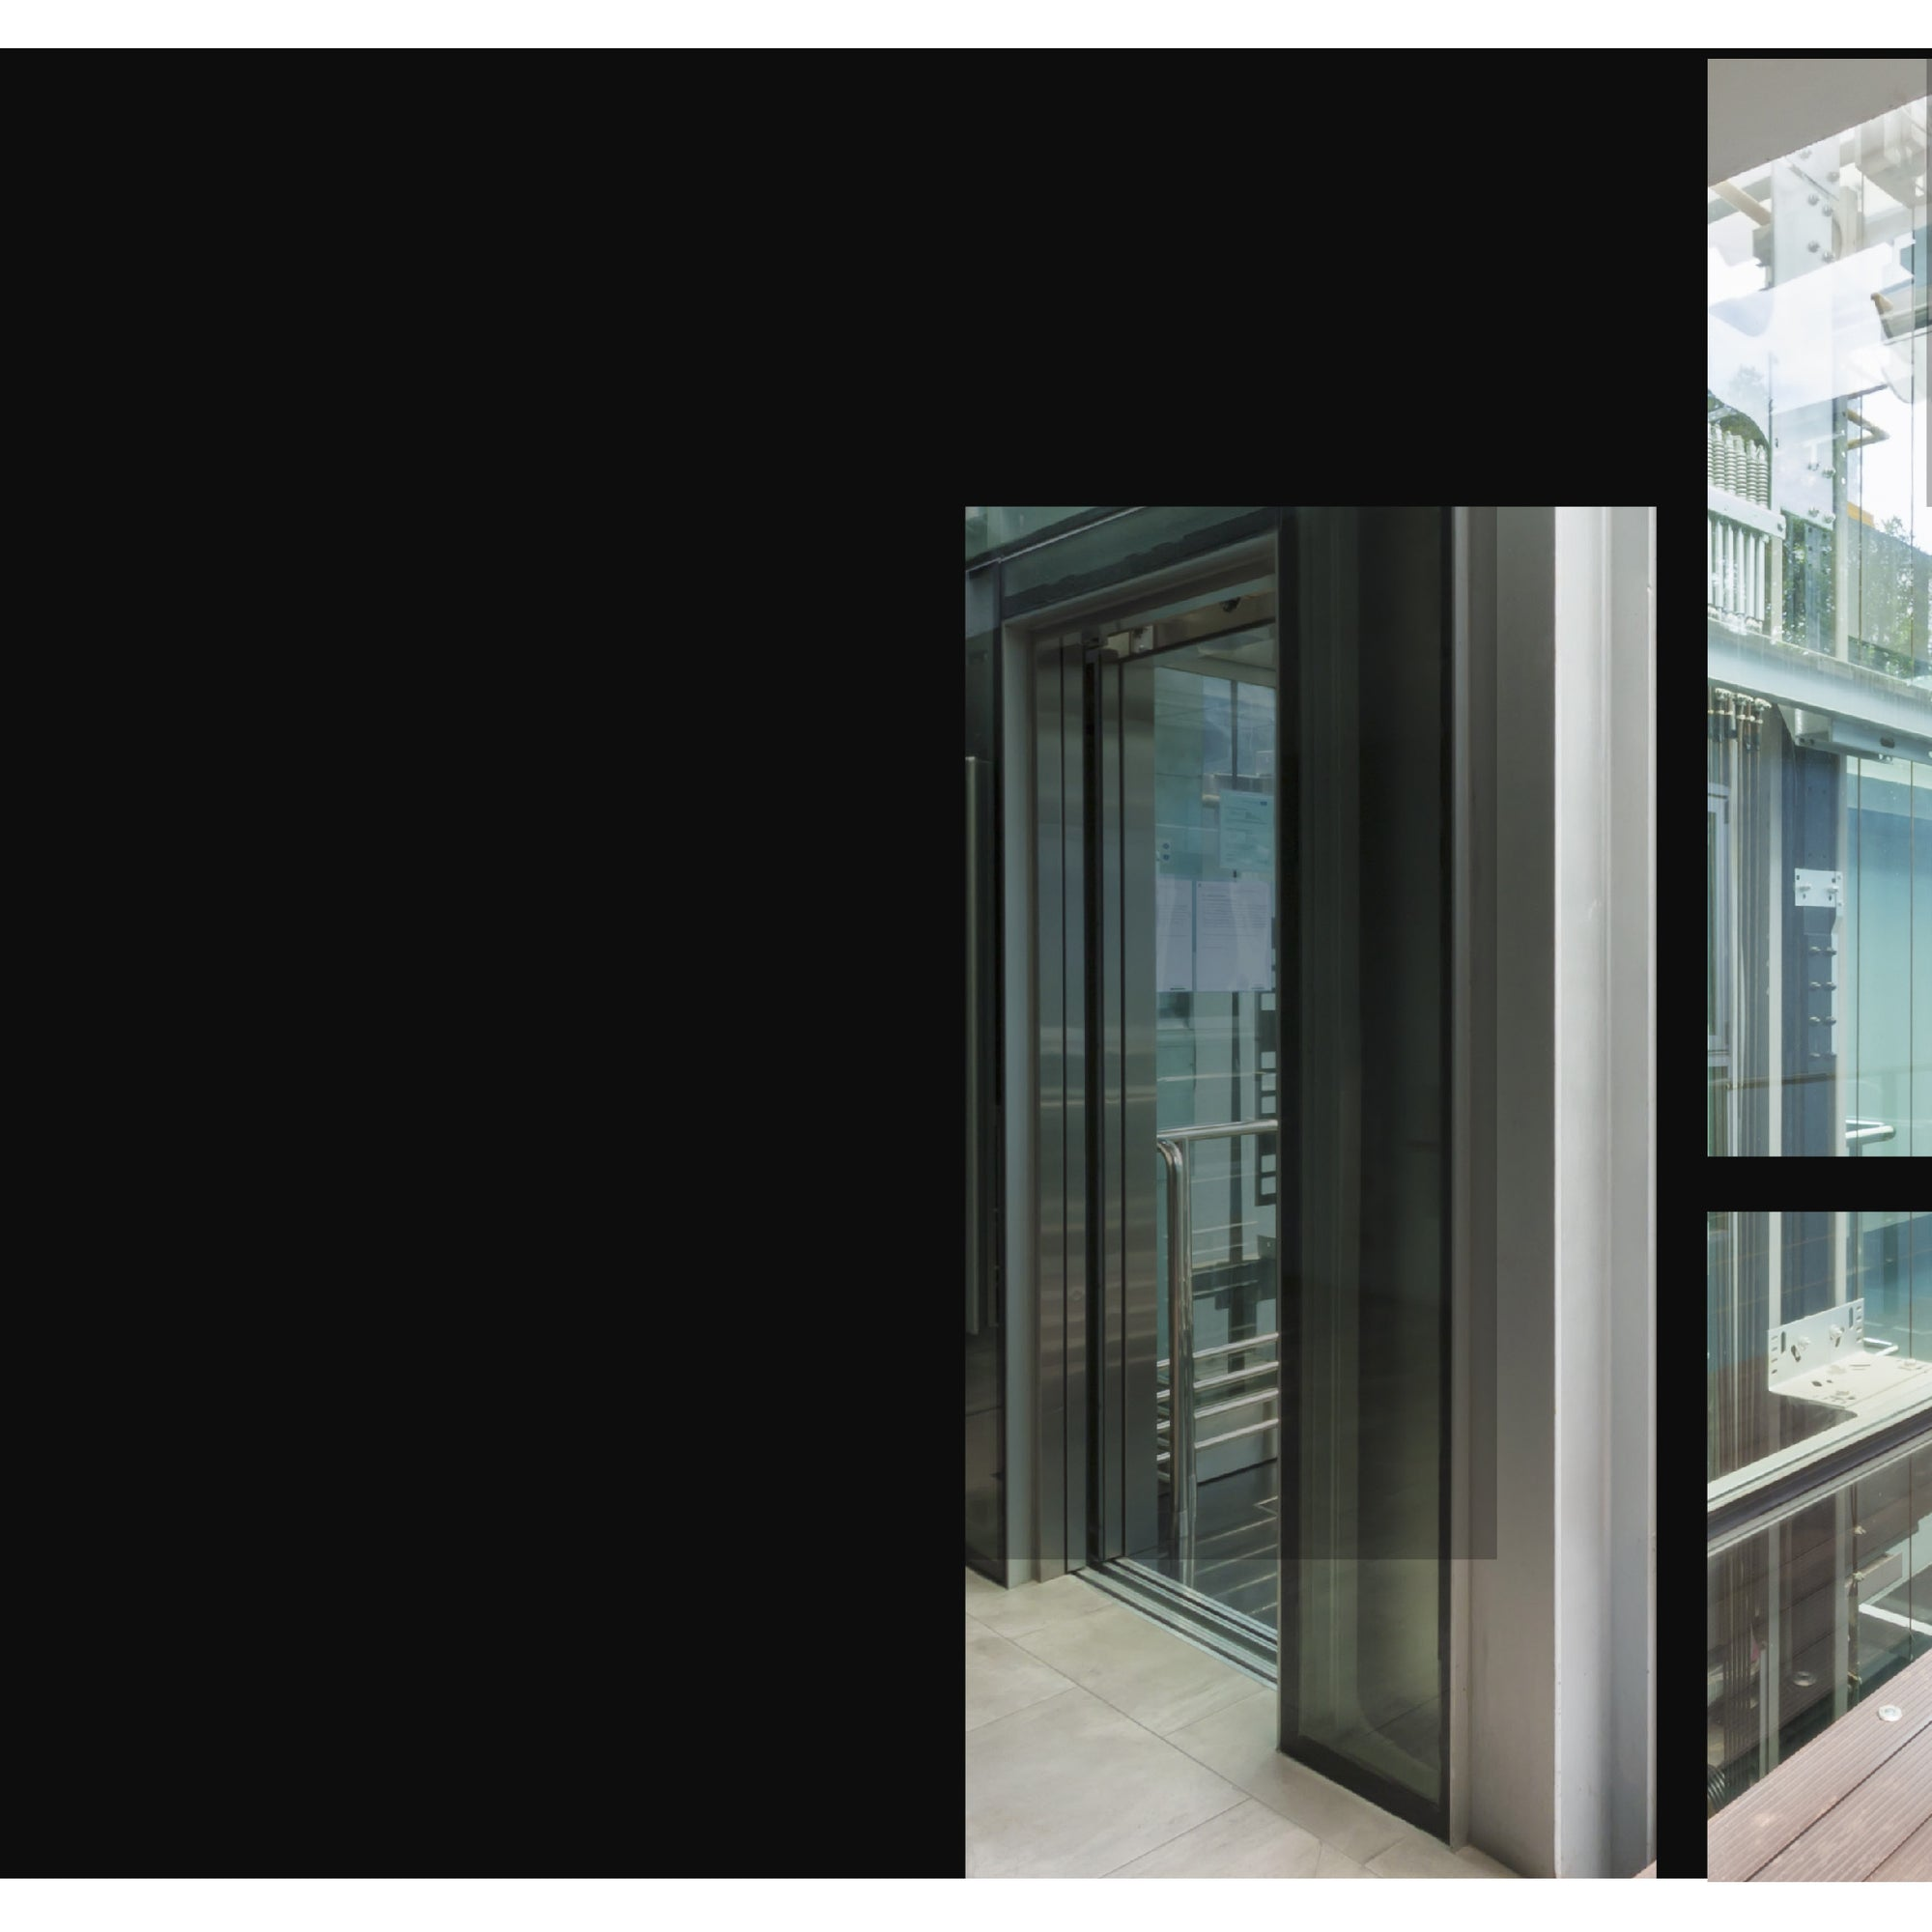 Jessen is a leader in providing lifts and  elevators across residential, accessible, commercial and industrial applications.